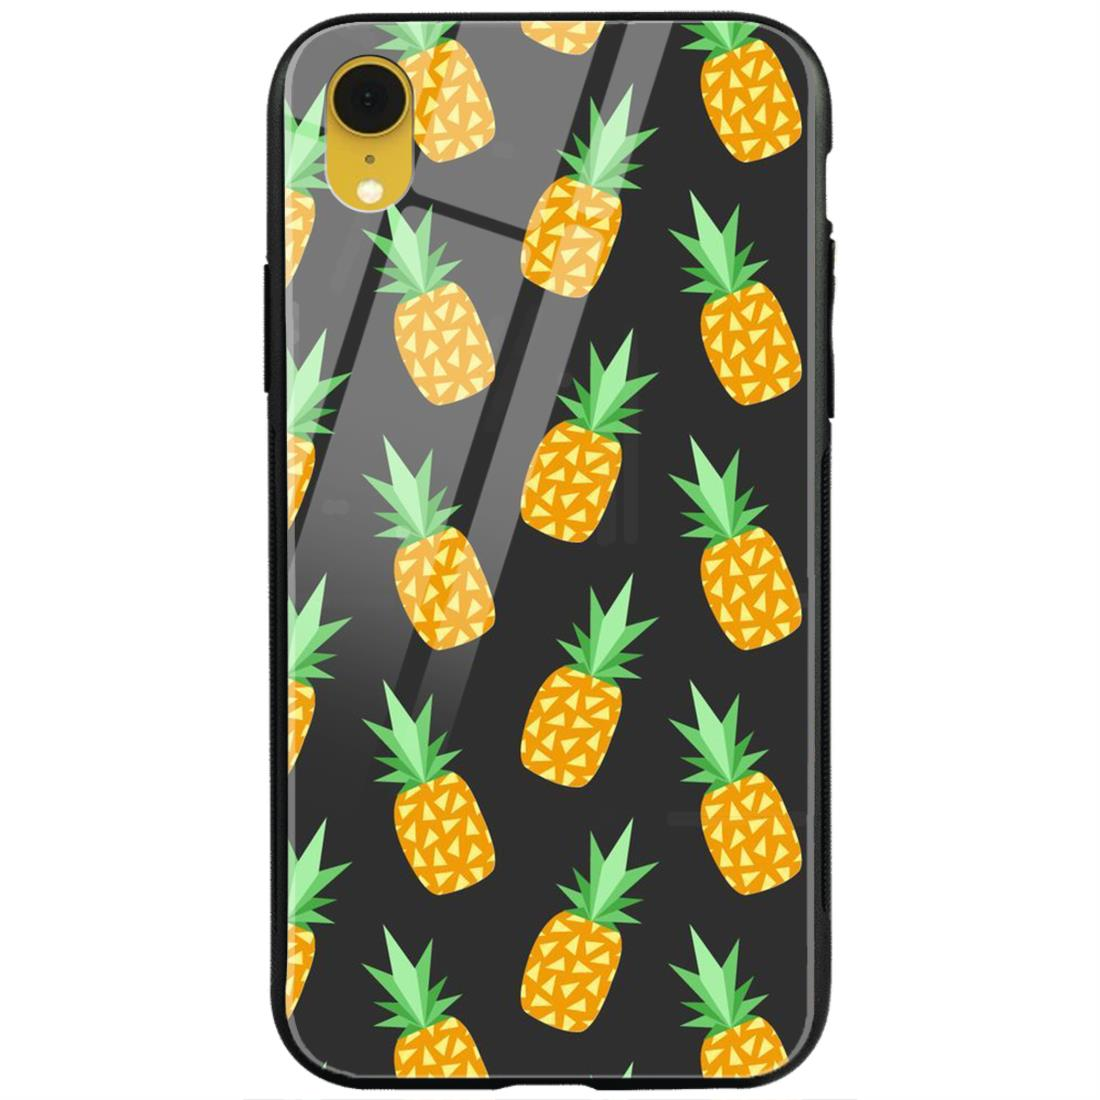 Phone Cases,Apple Phone Cases,iPhone xr Glass Case,Girl Collections